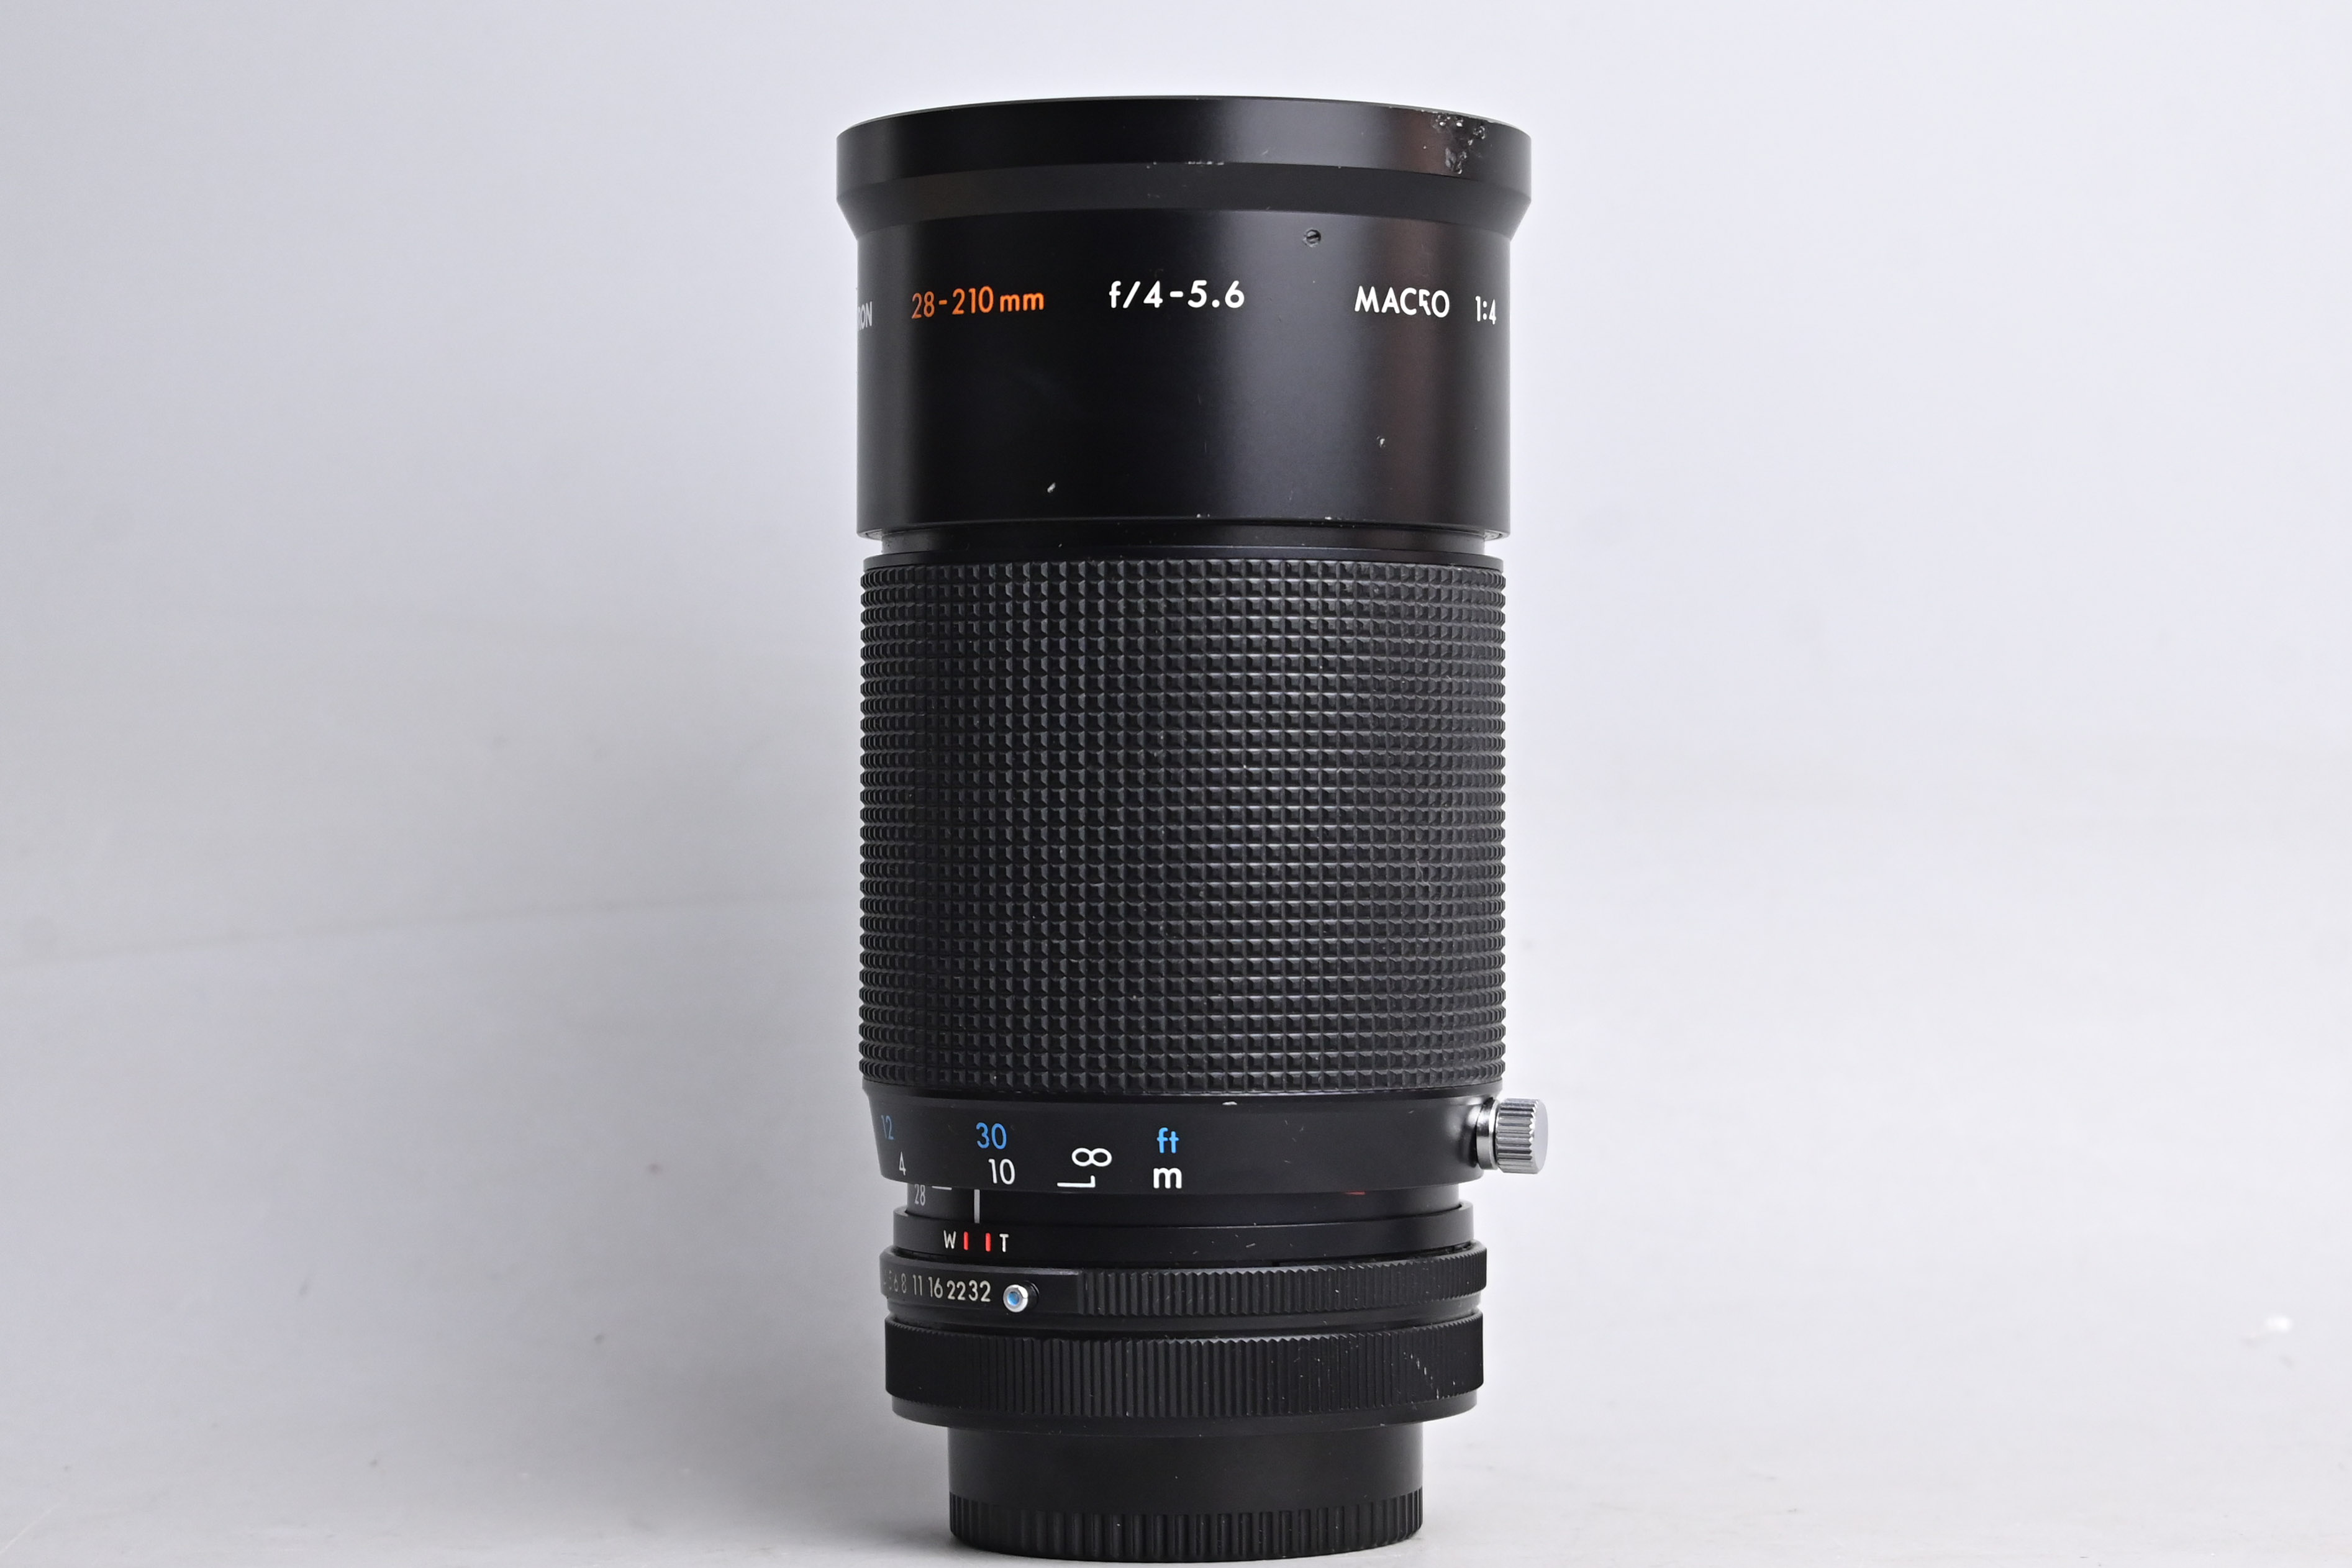 kiron-precision-28-210mm-f4-5-6-macro-1-4-for-canon-fd-28-200-4-5-6-17405